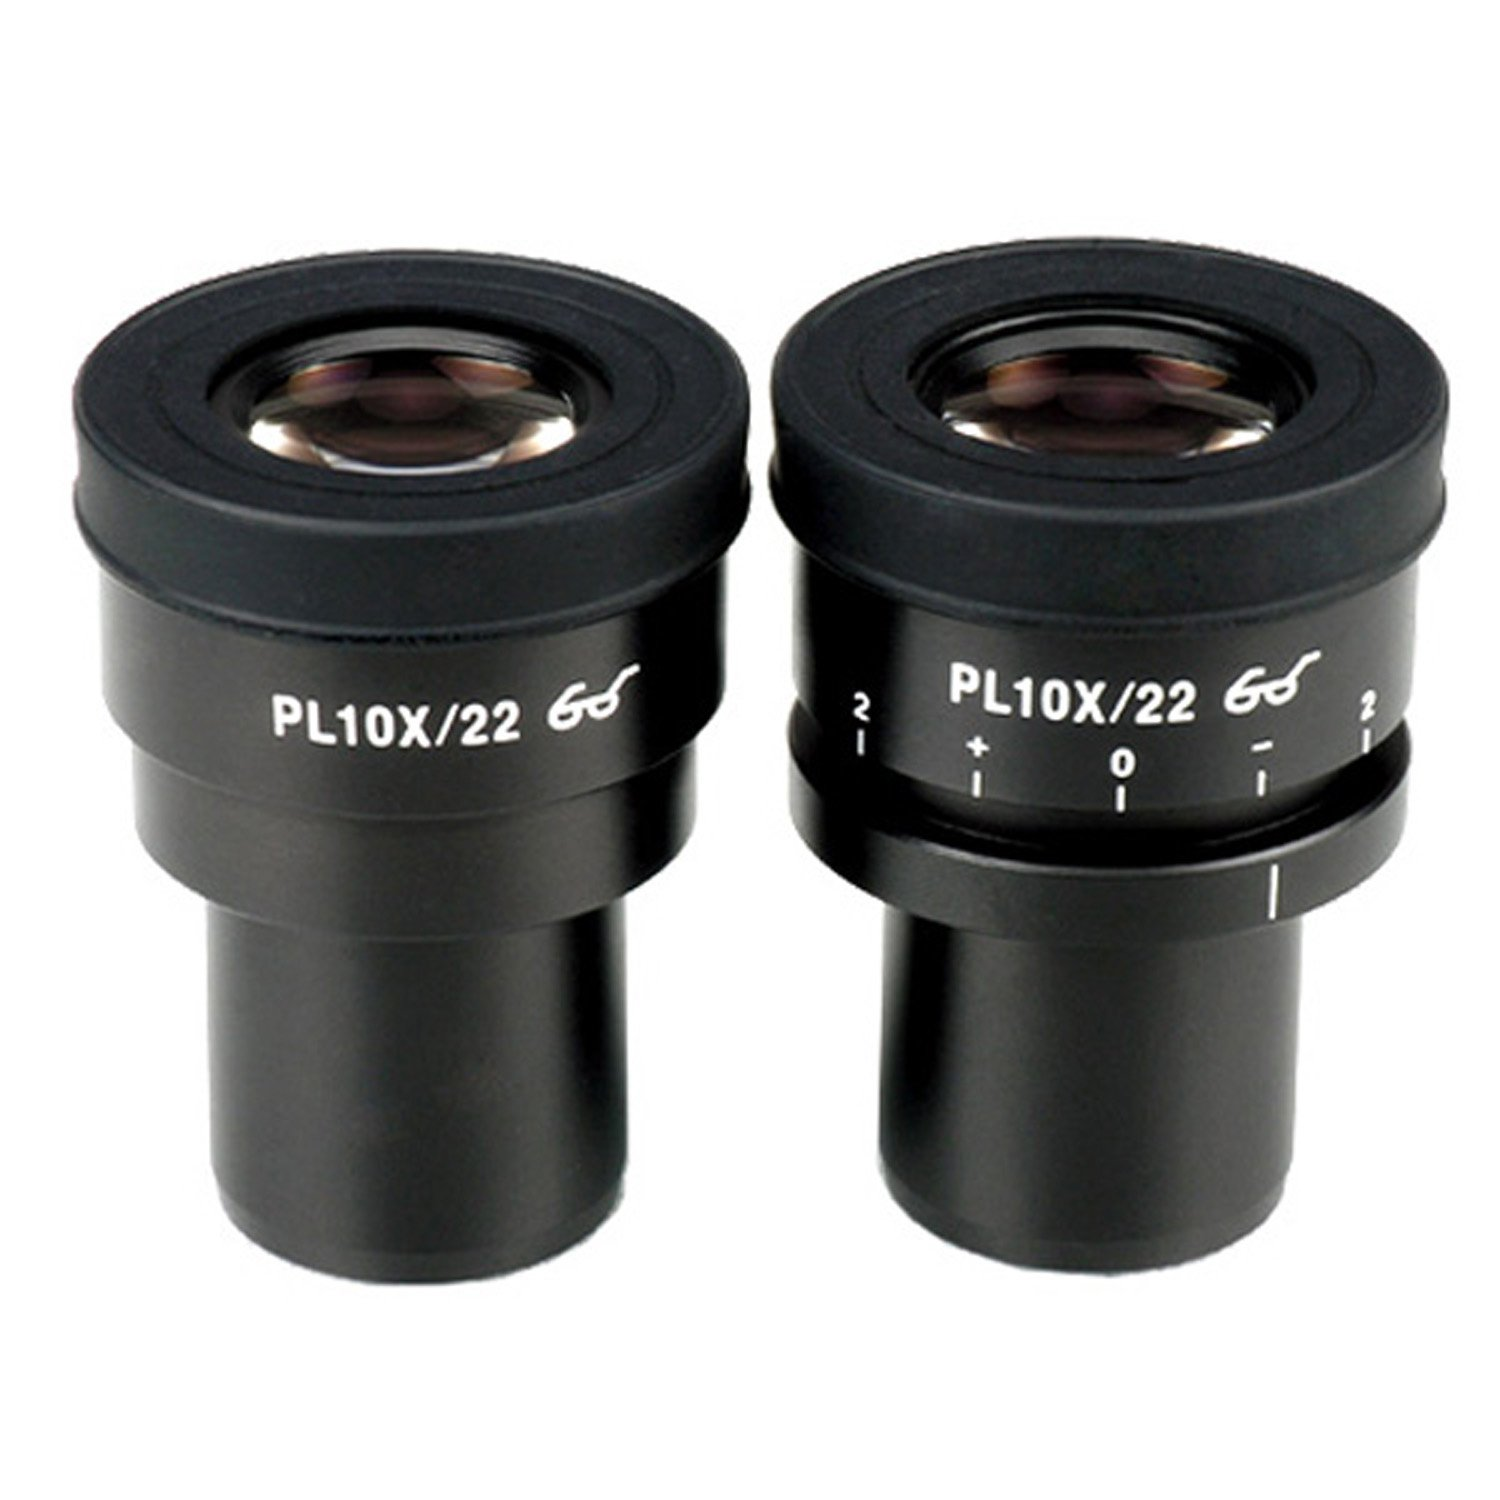 AmScope EP10X30PL 10X Focus Adjustable Plan Eyepieces for Zeiss, Leica and Nikon (30mm) by AmScope